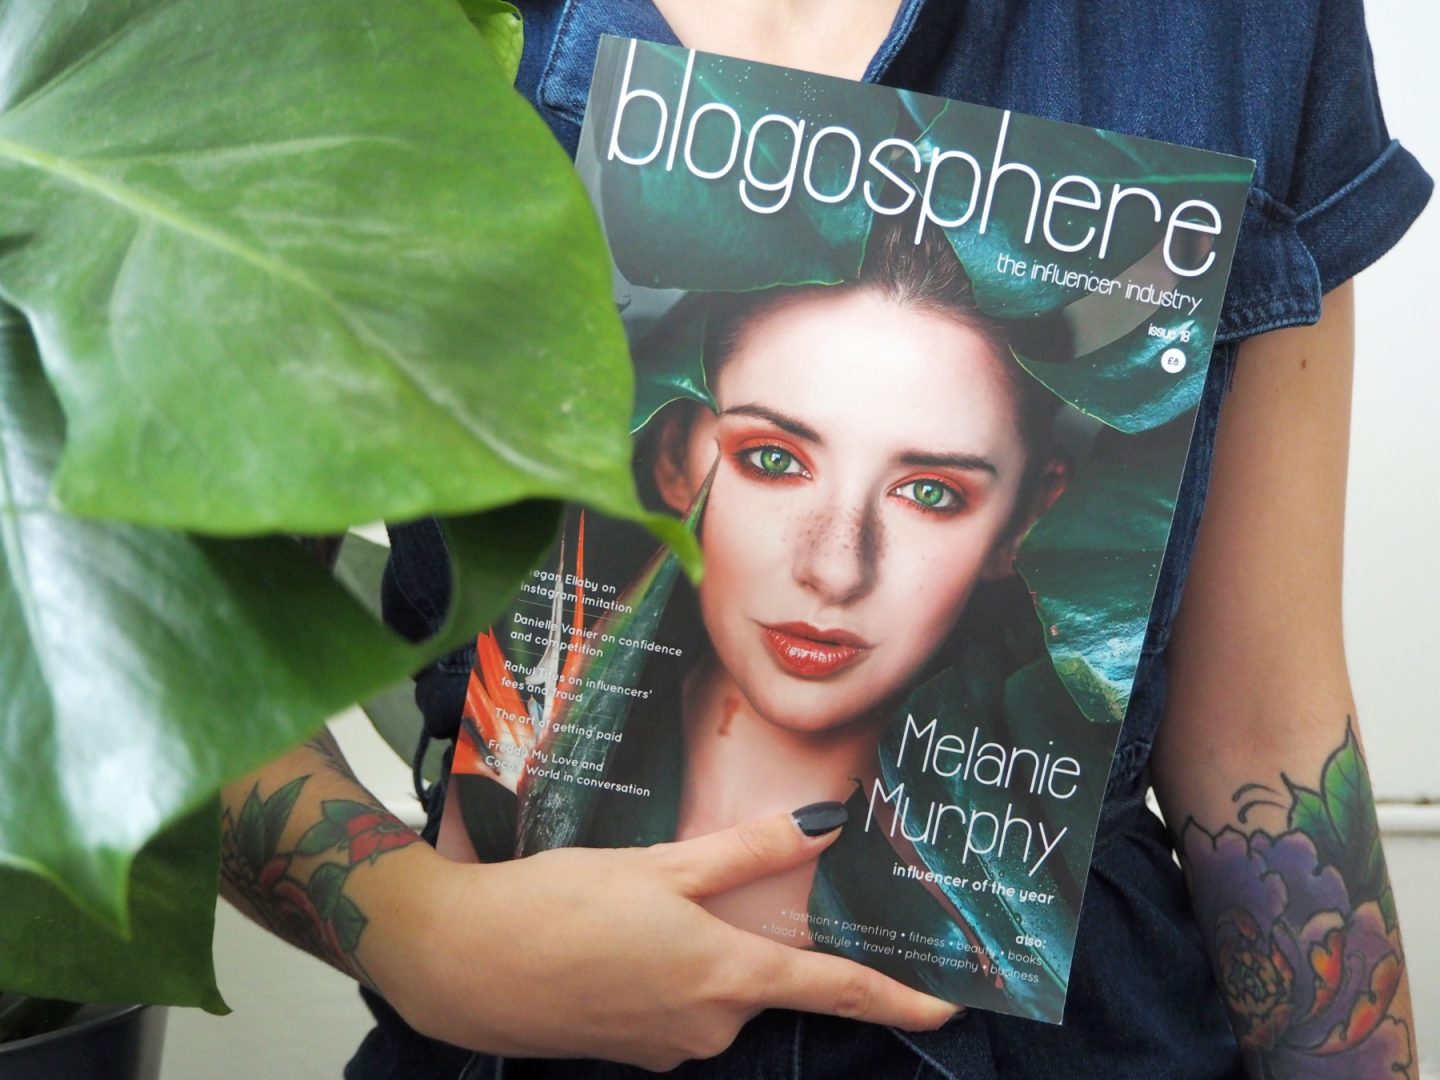 Has The Blogging Community Become Toxic? - me holding blogosphere with leafy plant